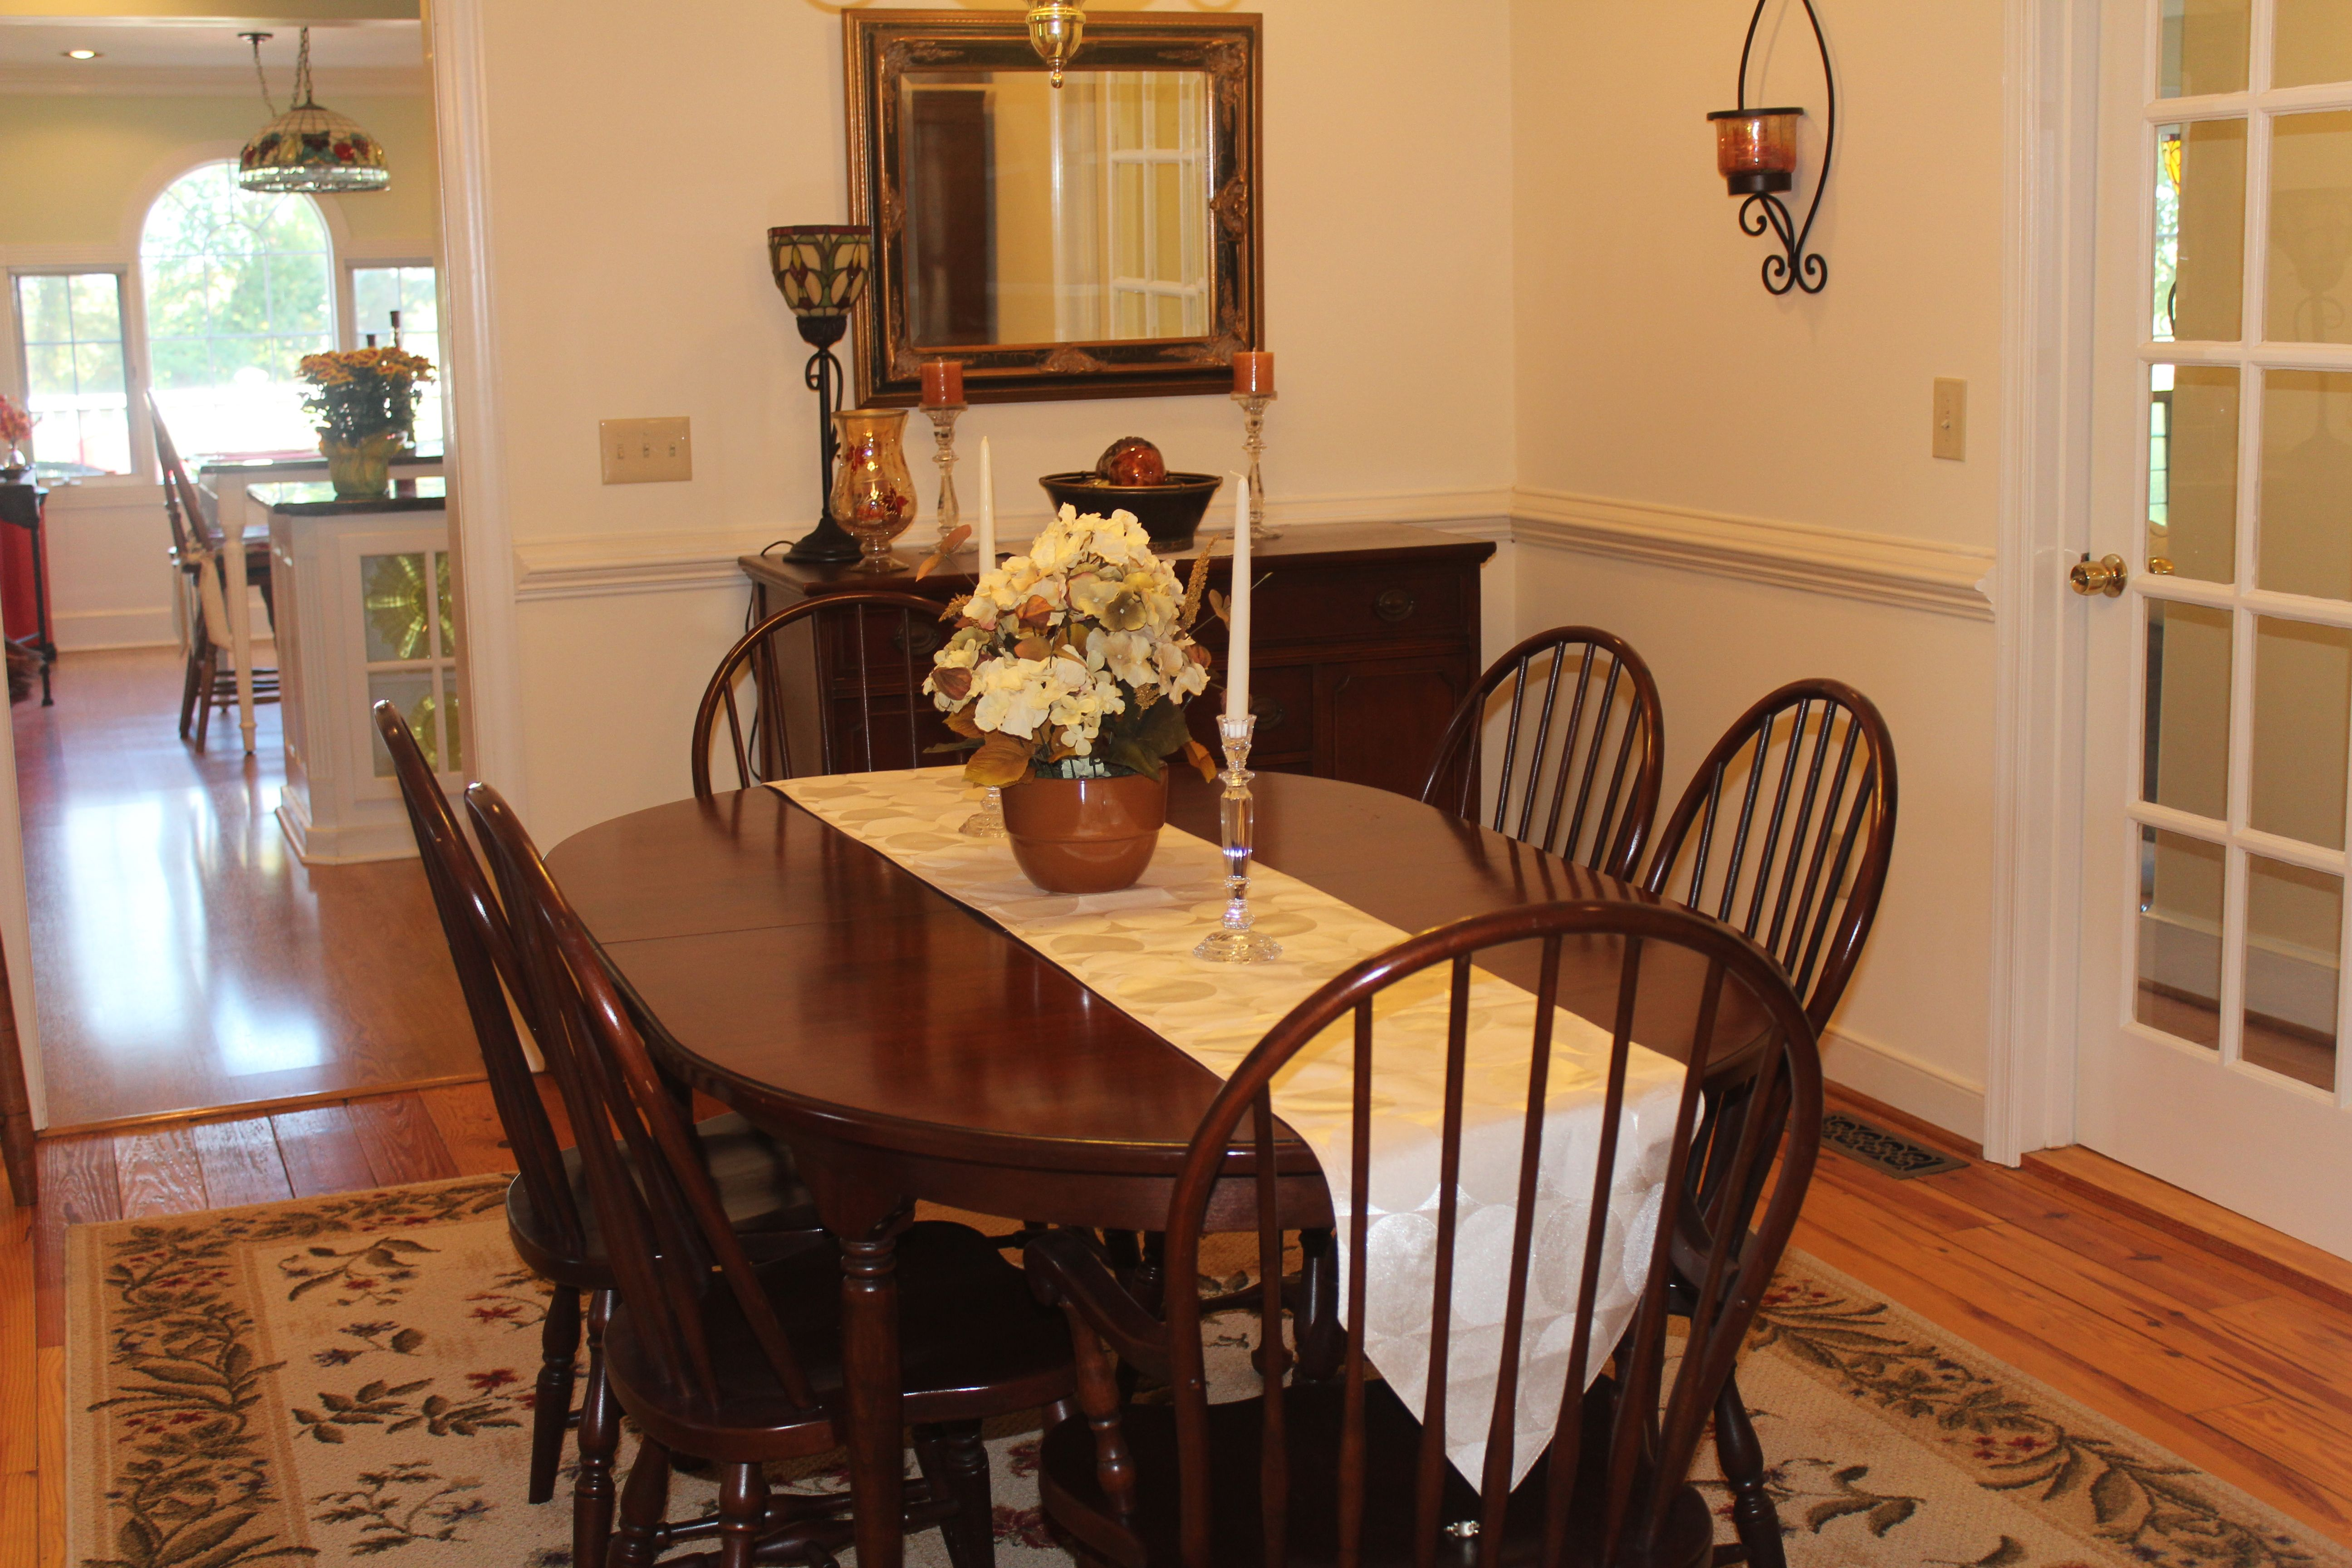 Fairview Farm S Dining Room Has Country Charm For Guests Dining